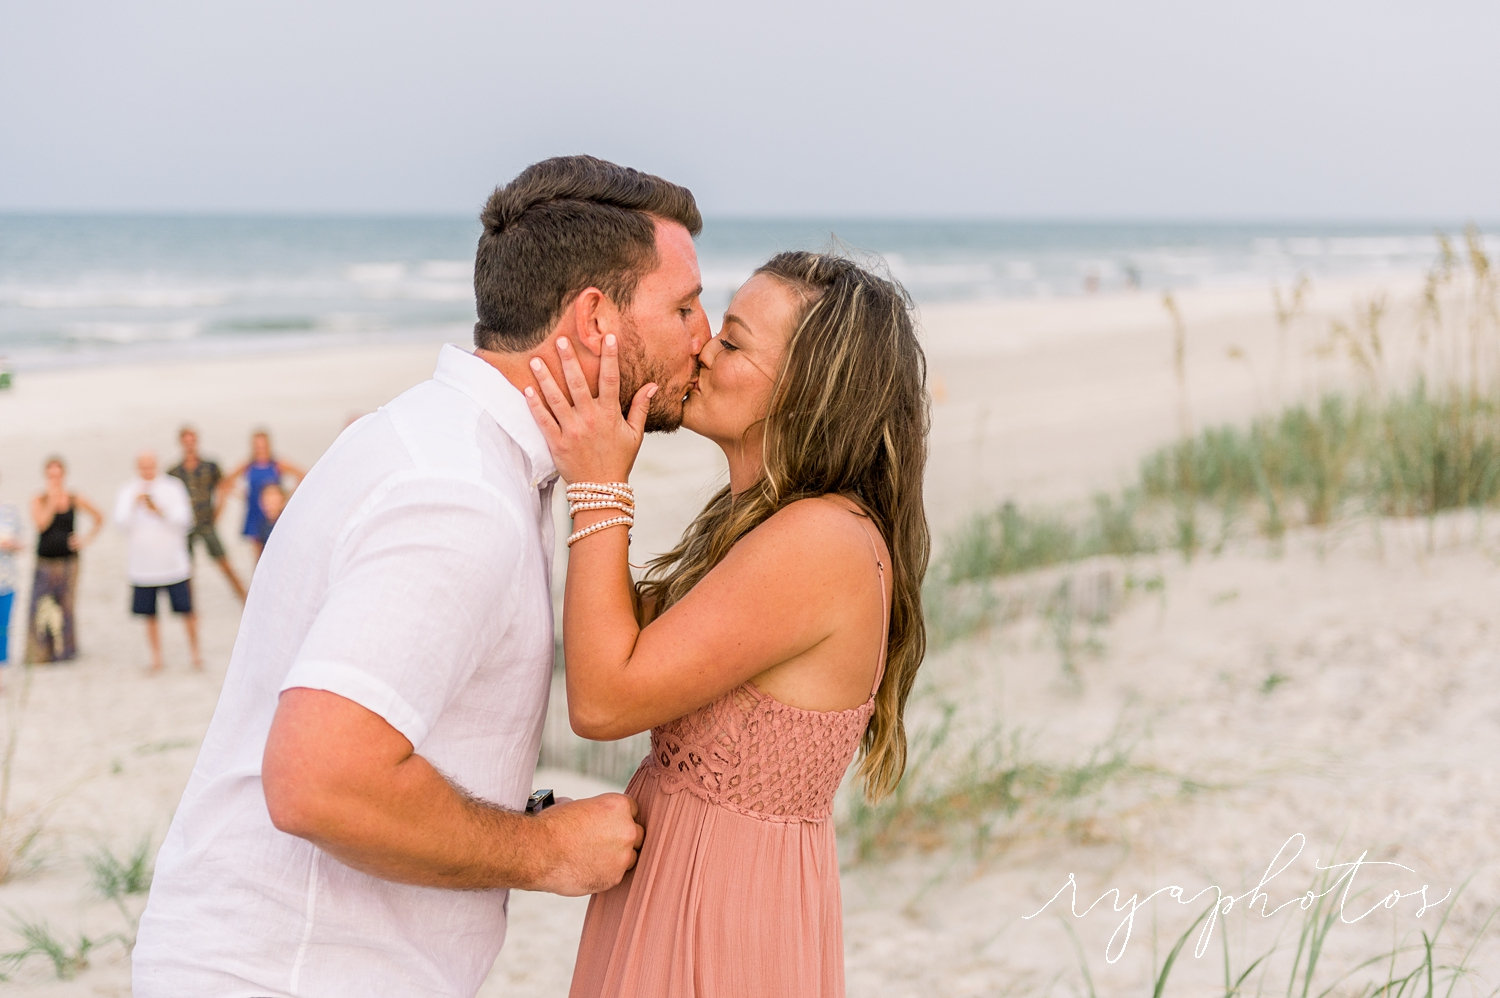 surprise engagement pictures, engagement photography beach, Rya Duncklee